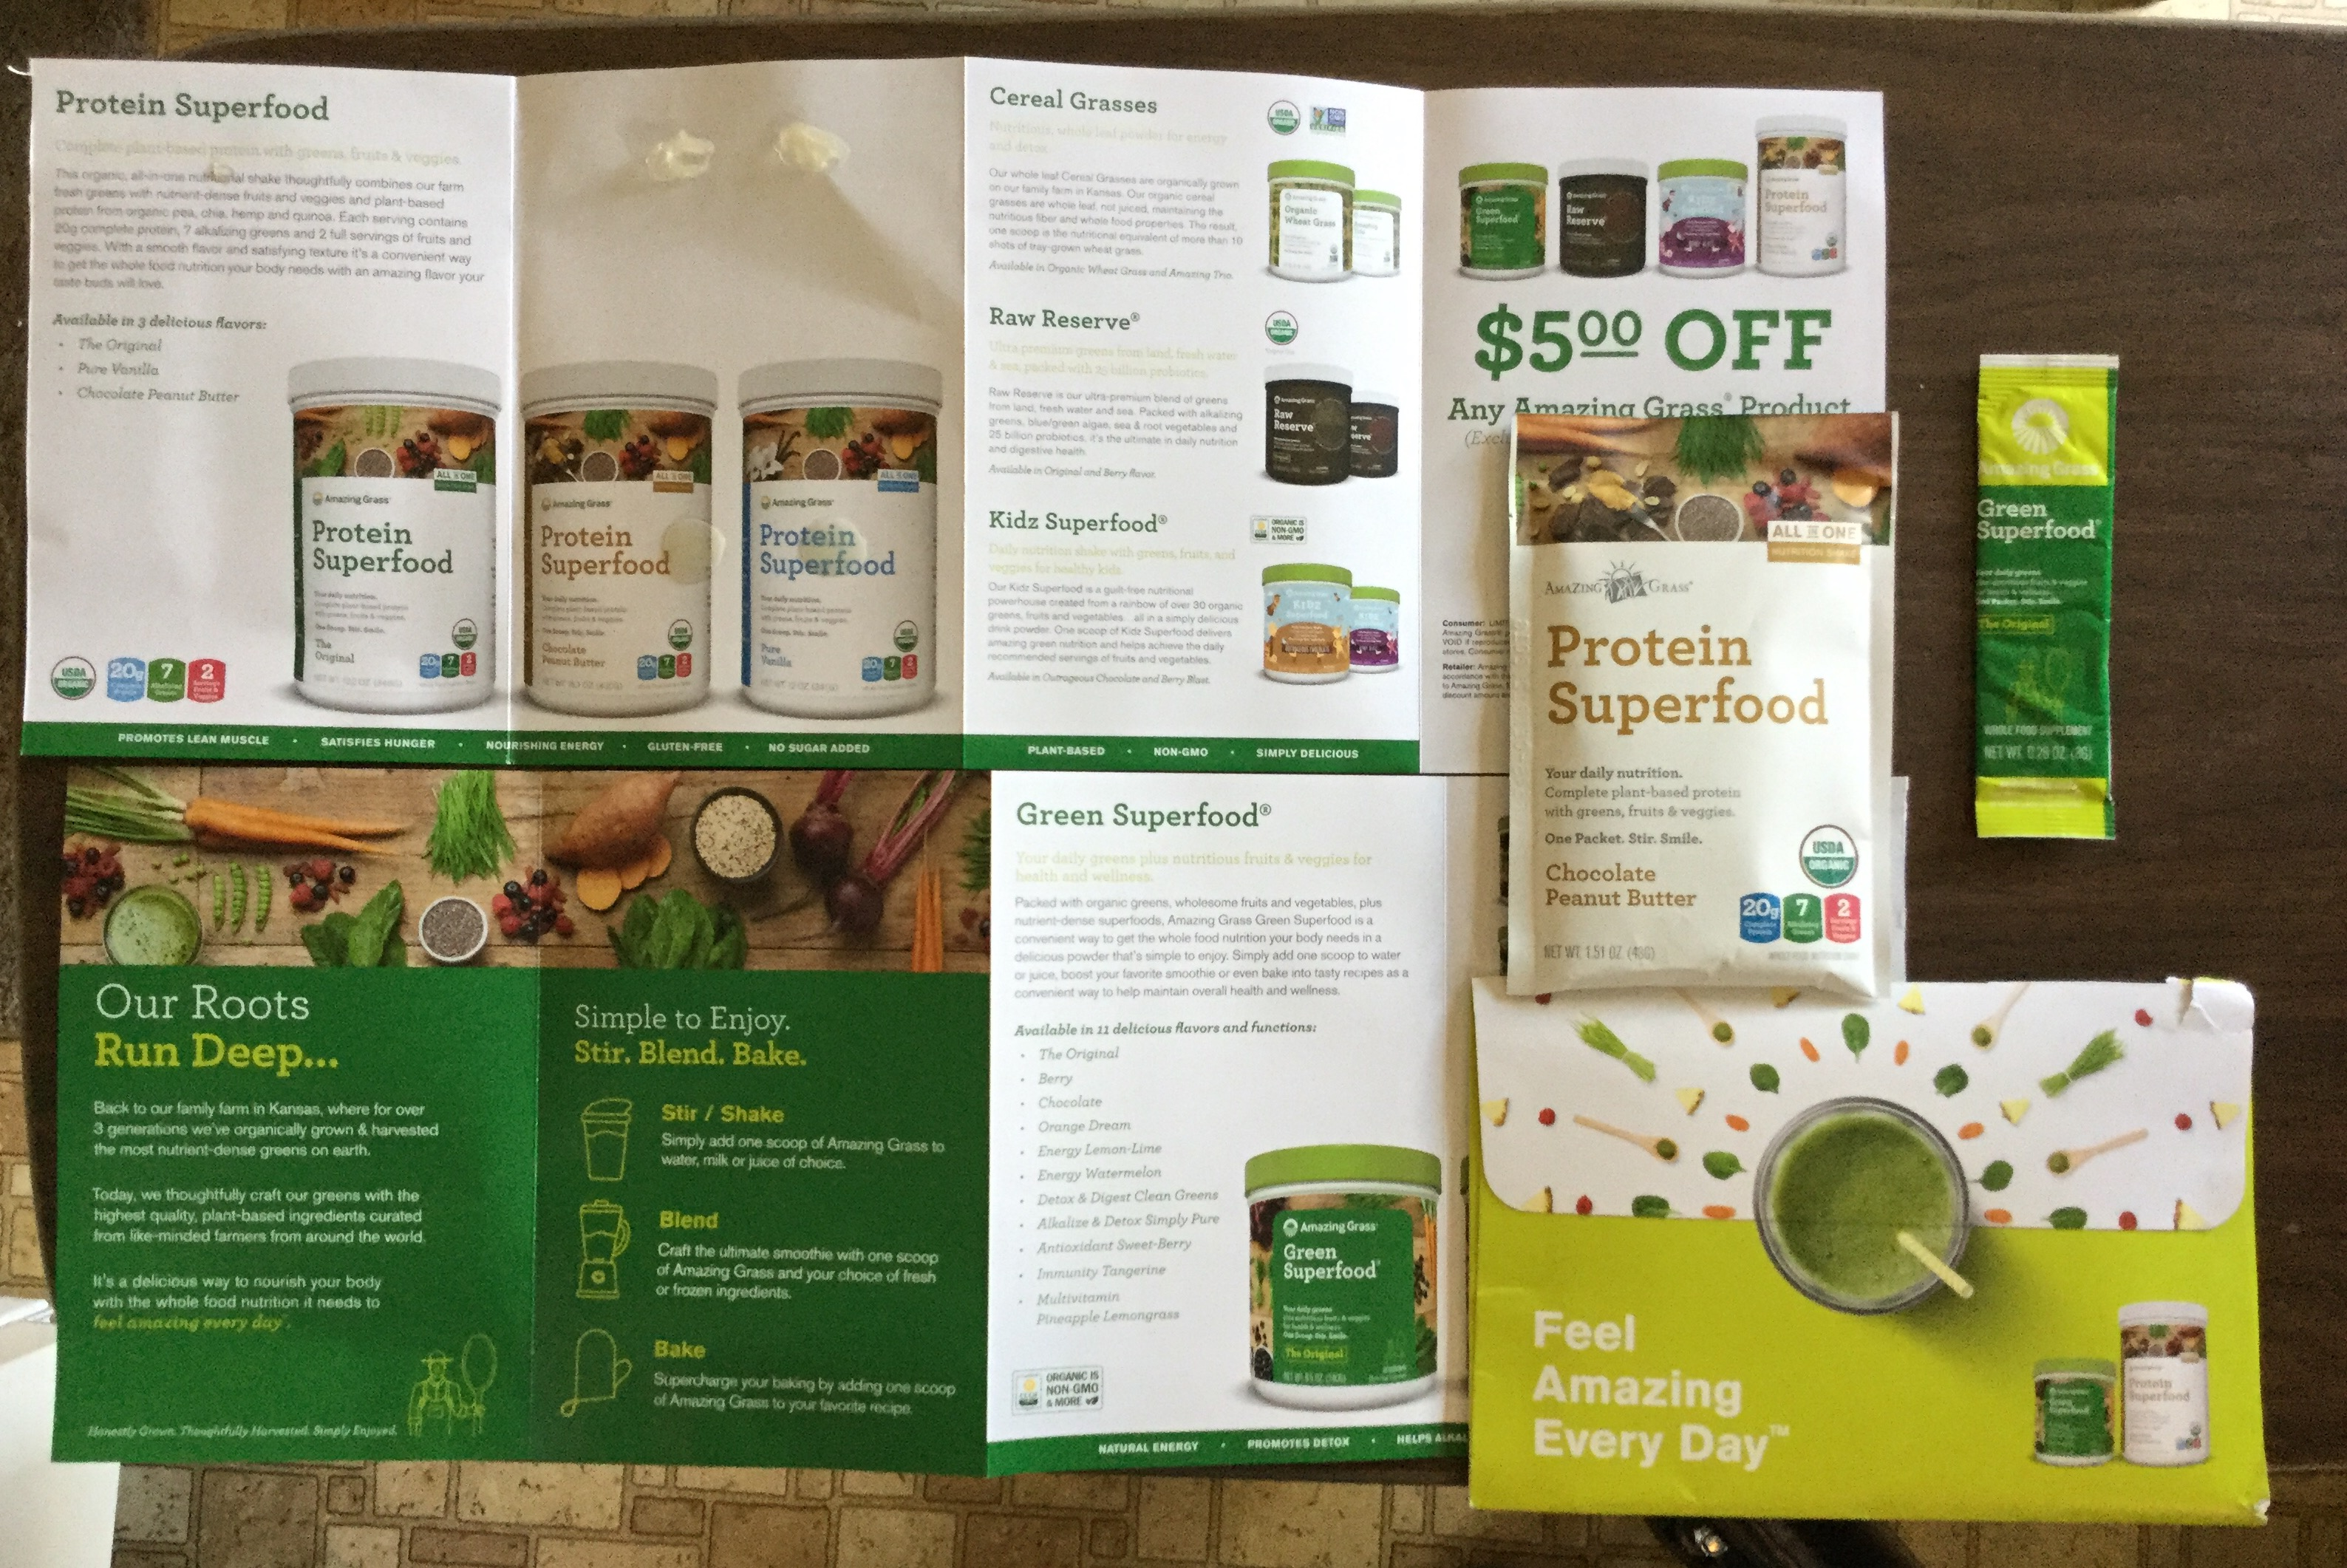 Free Amazing Grass Protein Superfood And Green Superfood